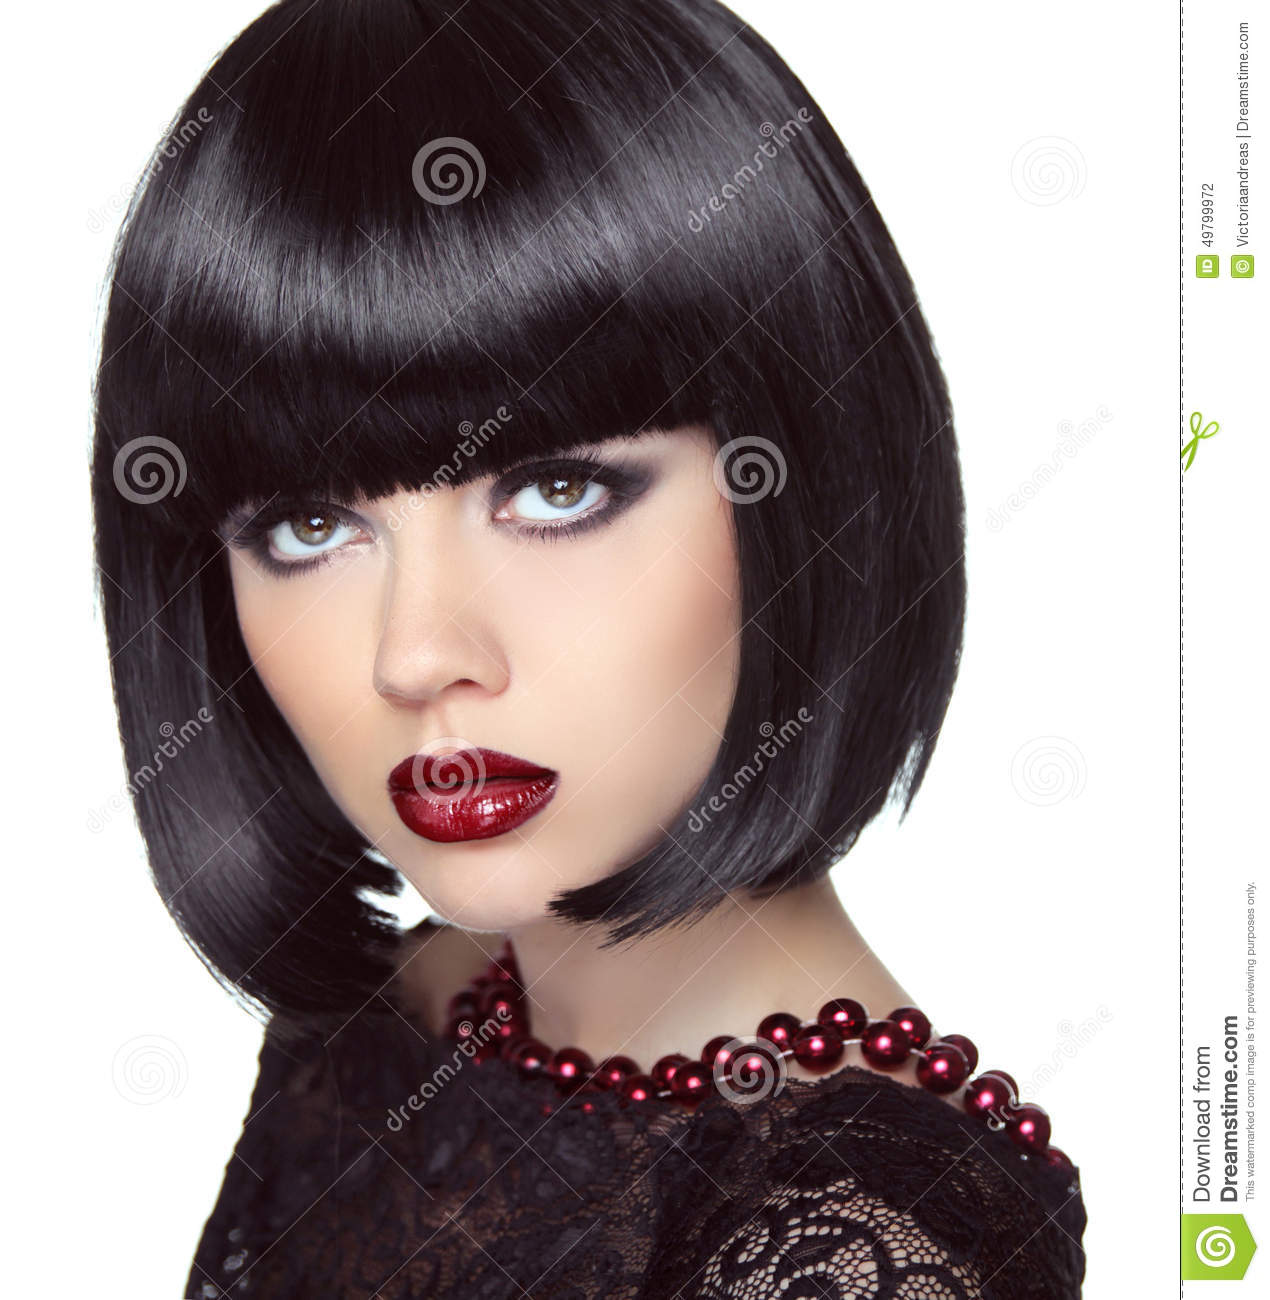 Black Hair: The Top Hairstyle Trends - All Things Style ...